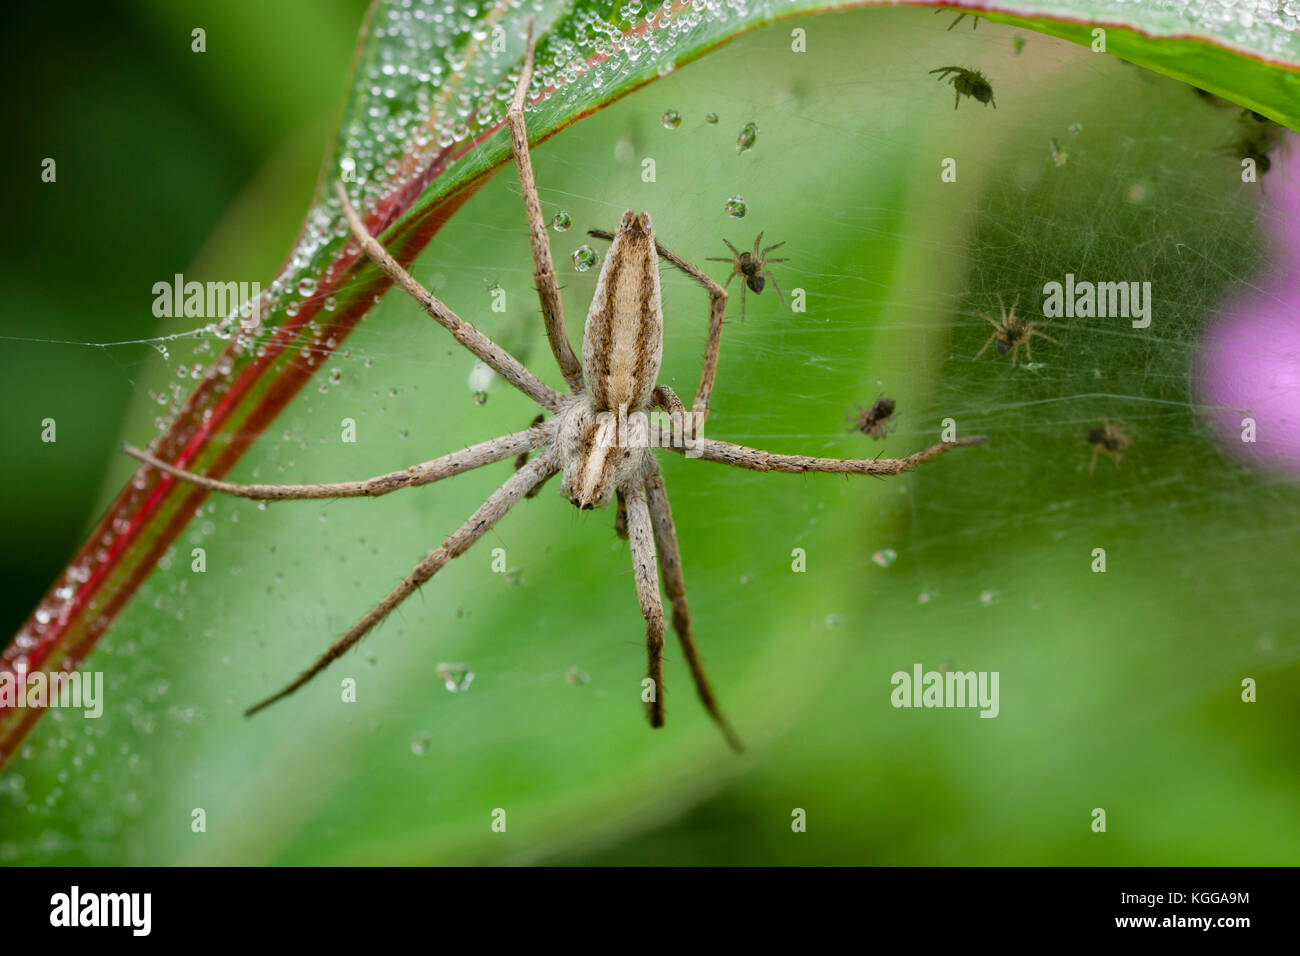 Adult female nursery web spider, Pisaura mirabilis, sitting on the web used for protection of her tiny spiderlings - Stock Image